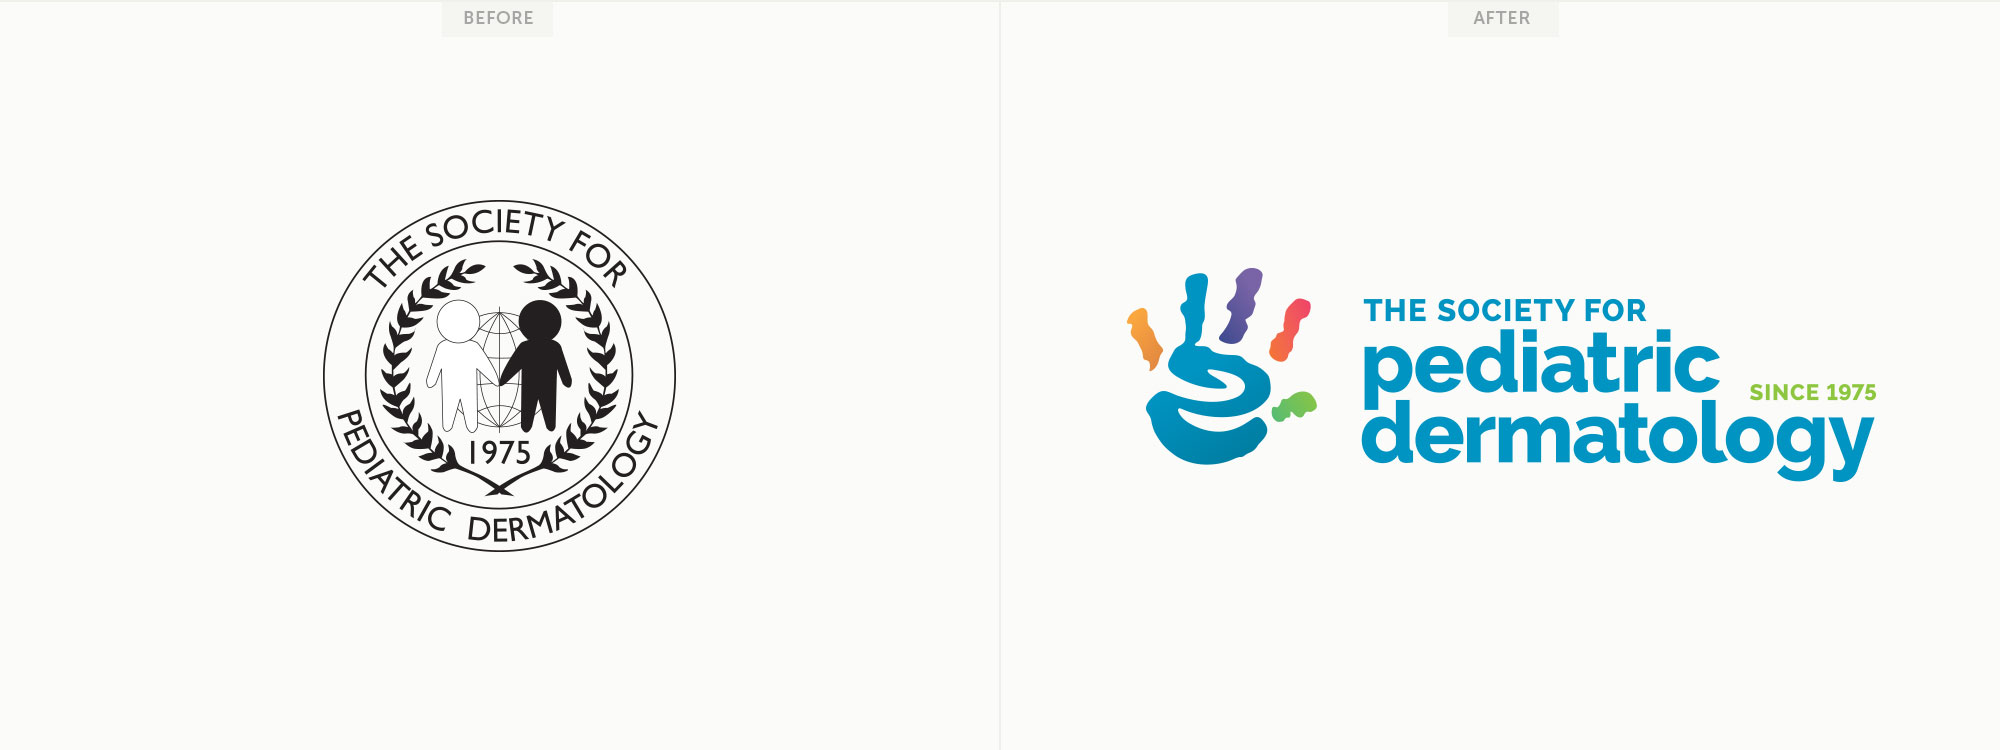 Before and after for The Society of Pediatric Dermatology's new logo design.Image copyright Jeff Miller, HellothisisJeff Design LLC